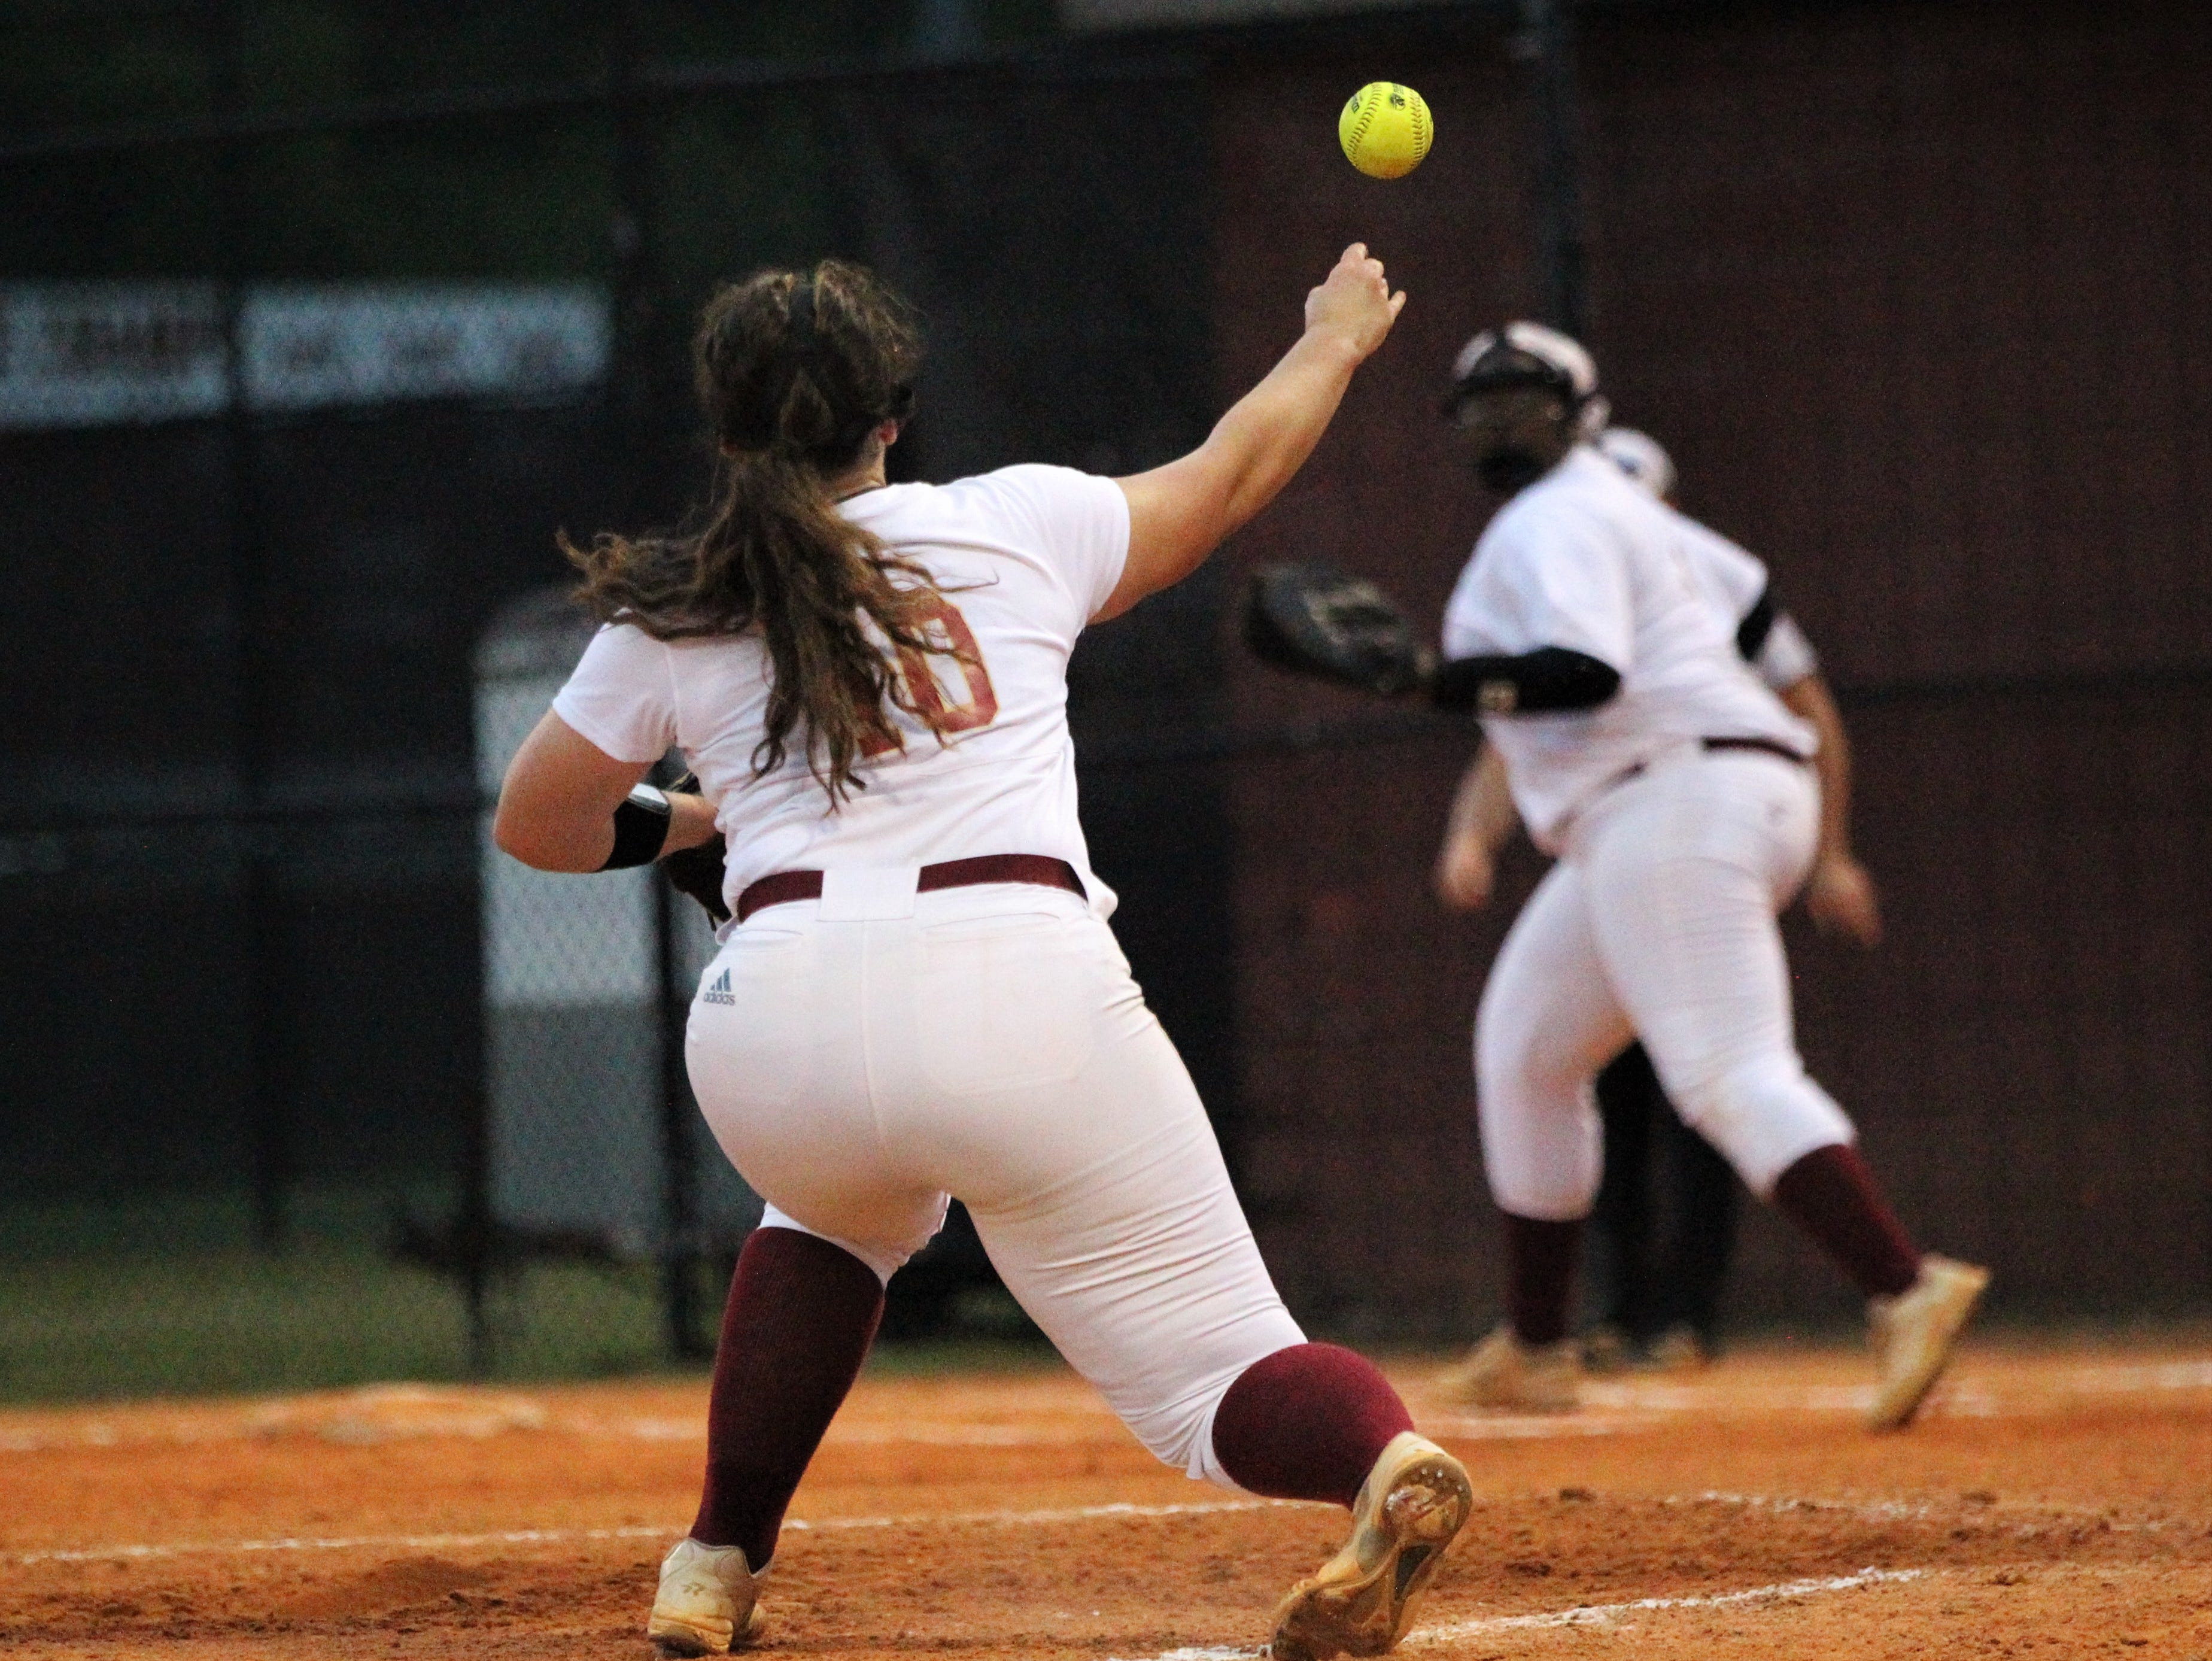 Florida High pitcher Julia Hayes throws to first to try to record an out as Lincoln's softball team beat Florida High 7-3 on Thursday, April 4, 2019.